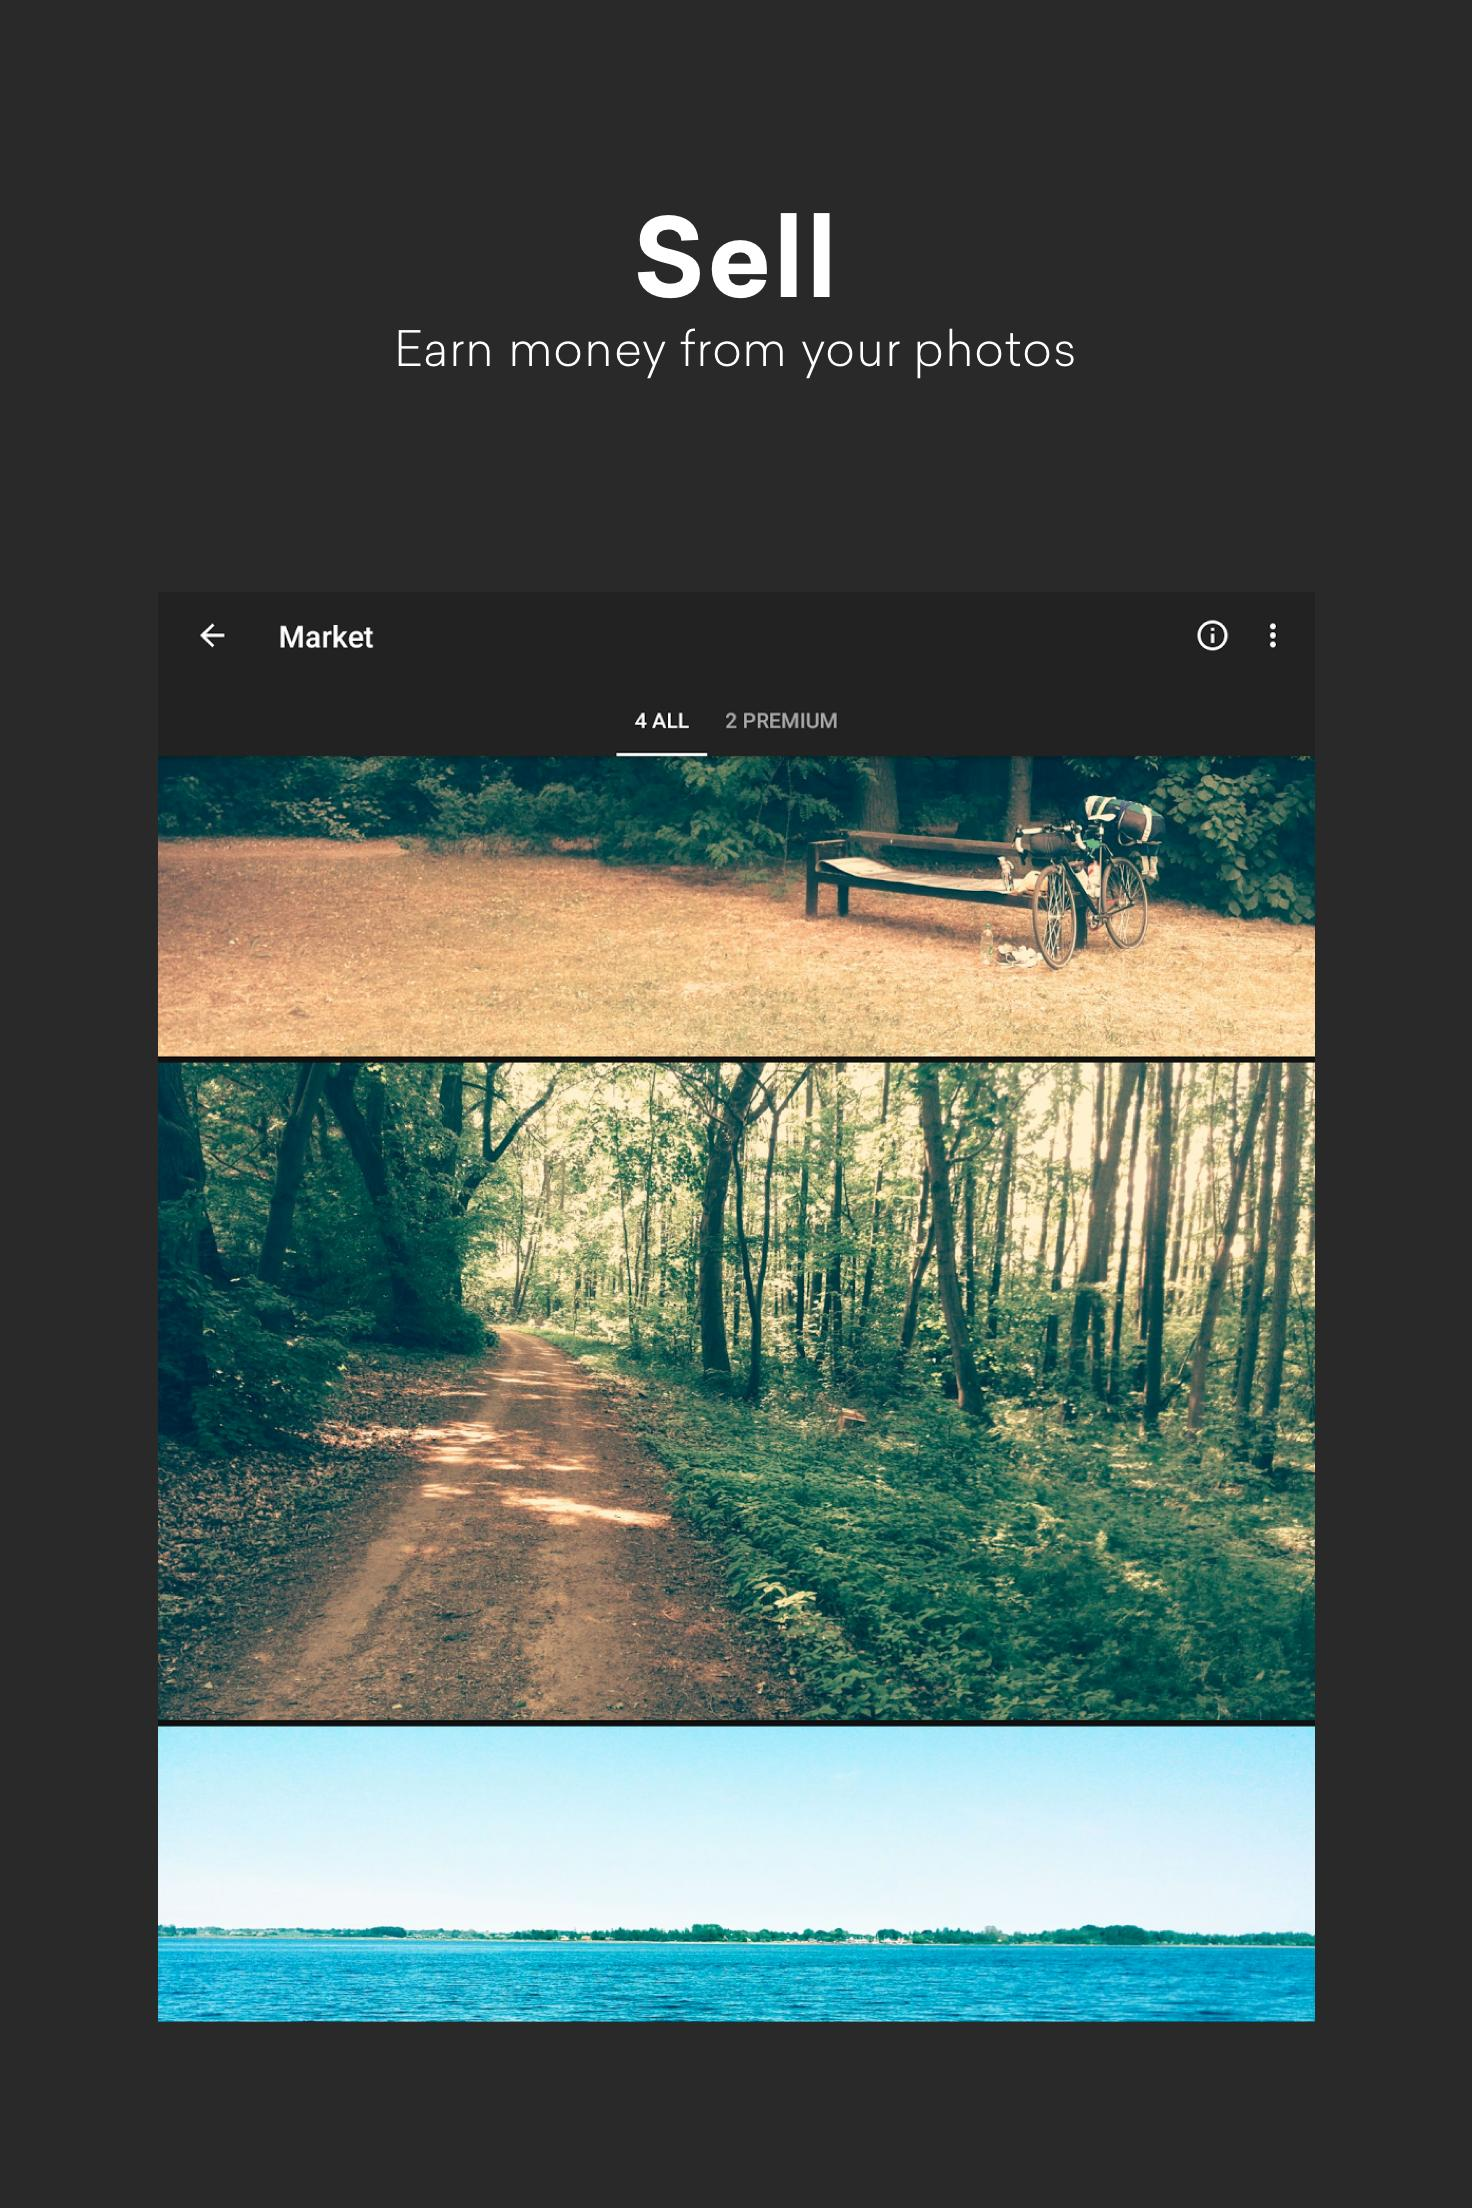 EyeEm Free Photo App For Sharing & Selling Images 8.1 Screenshot 14